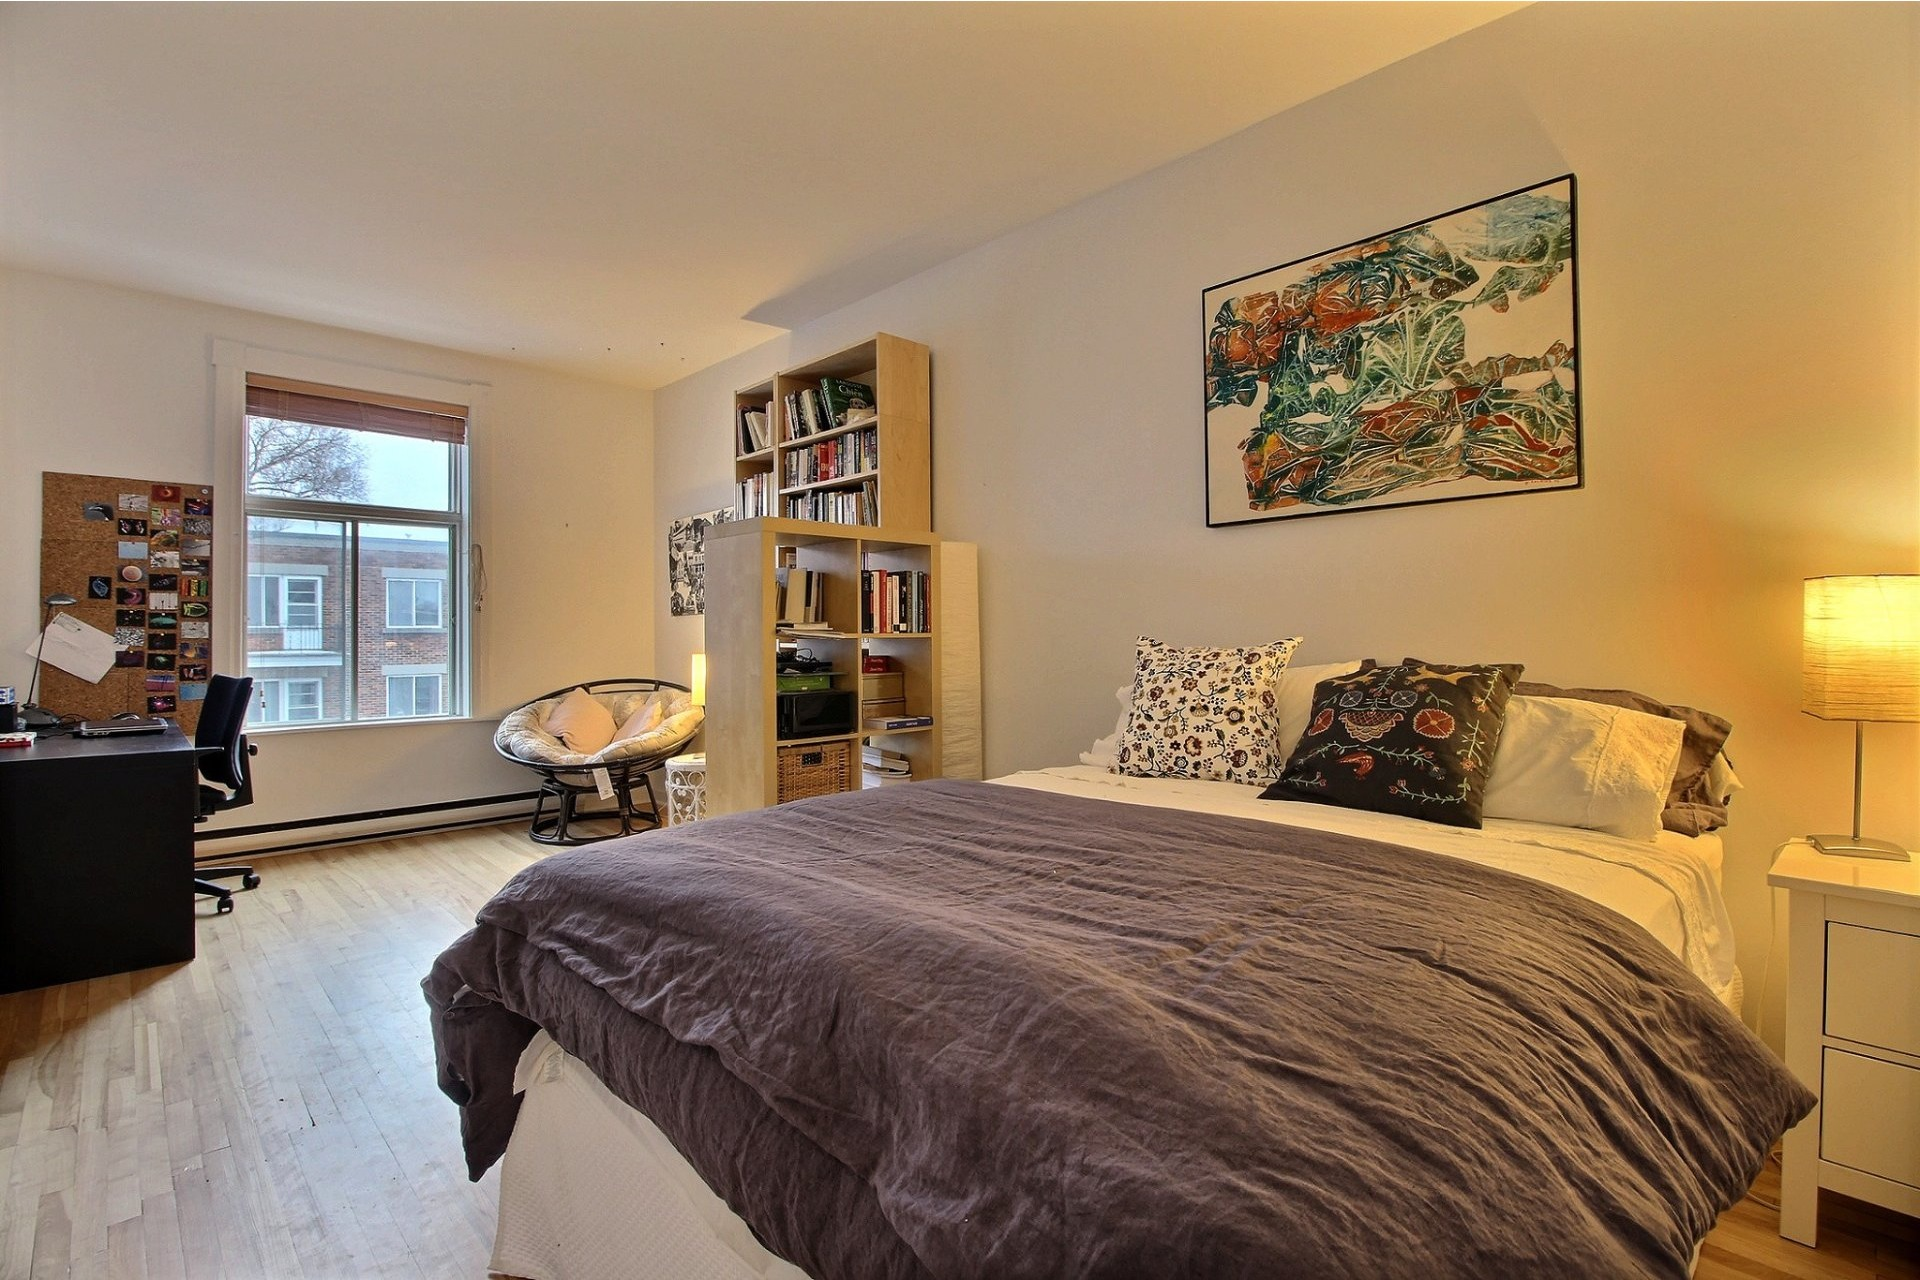 image 13 - Apartment For rent Montréal Ahuntsic-Cartierville  - 2 rooms